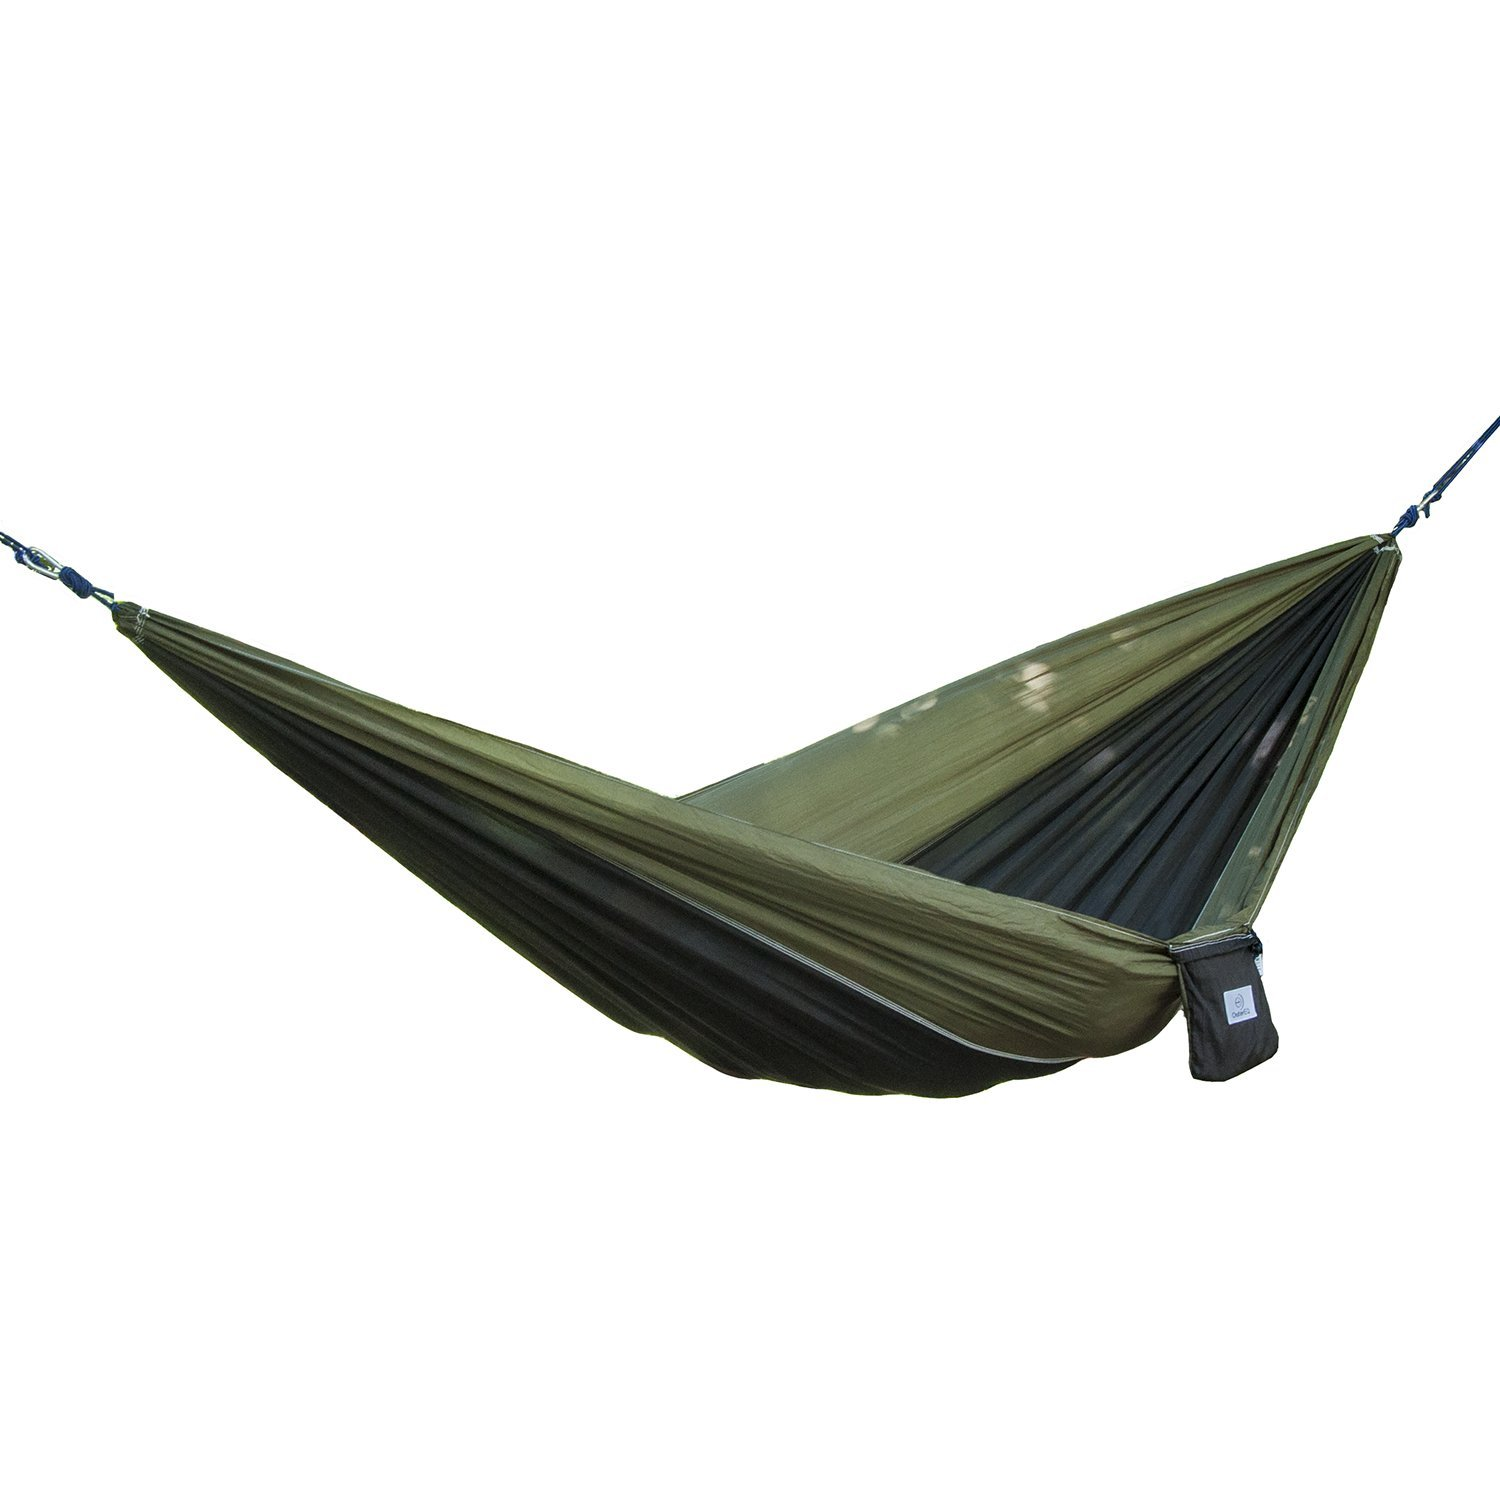 Equipped Outdoors 2 Person Parachute Hammock